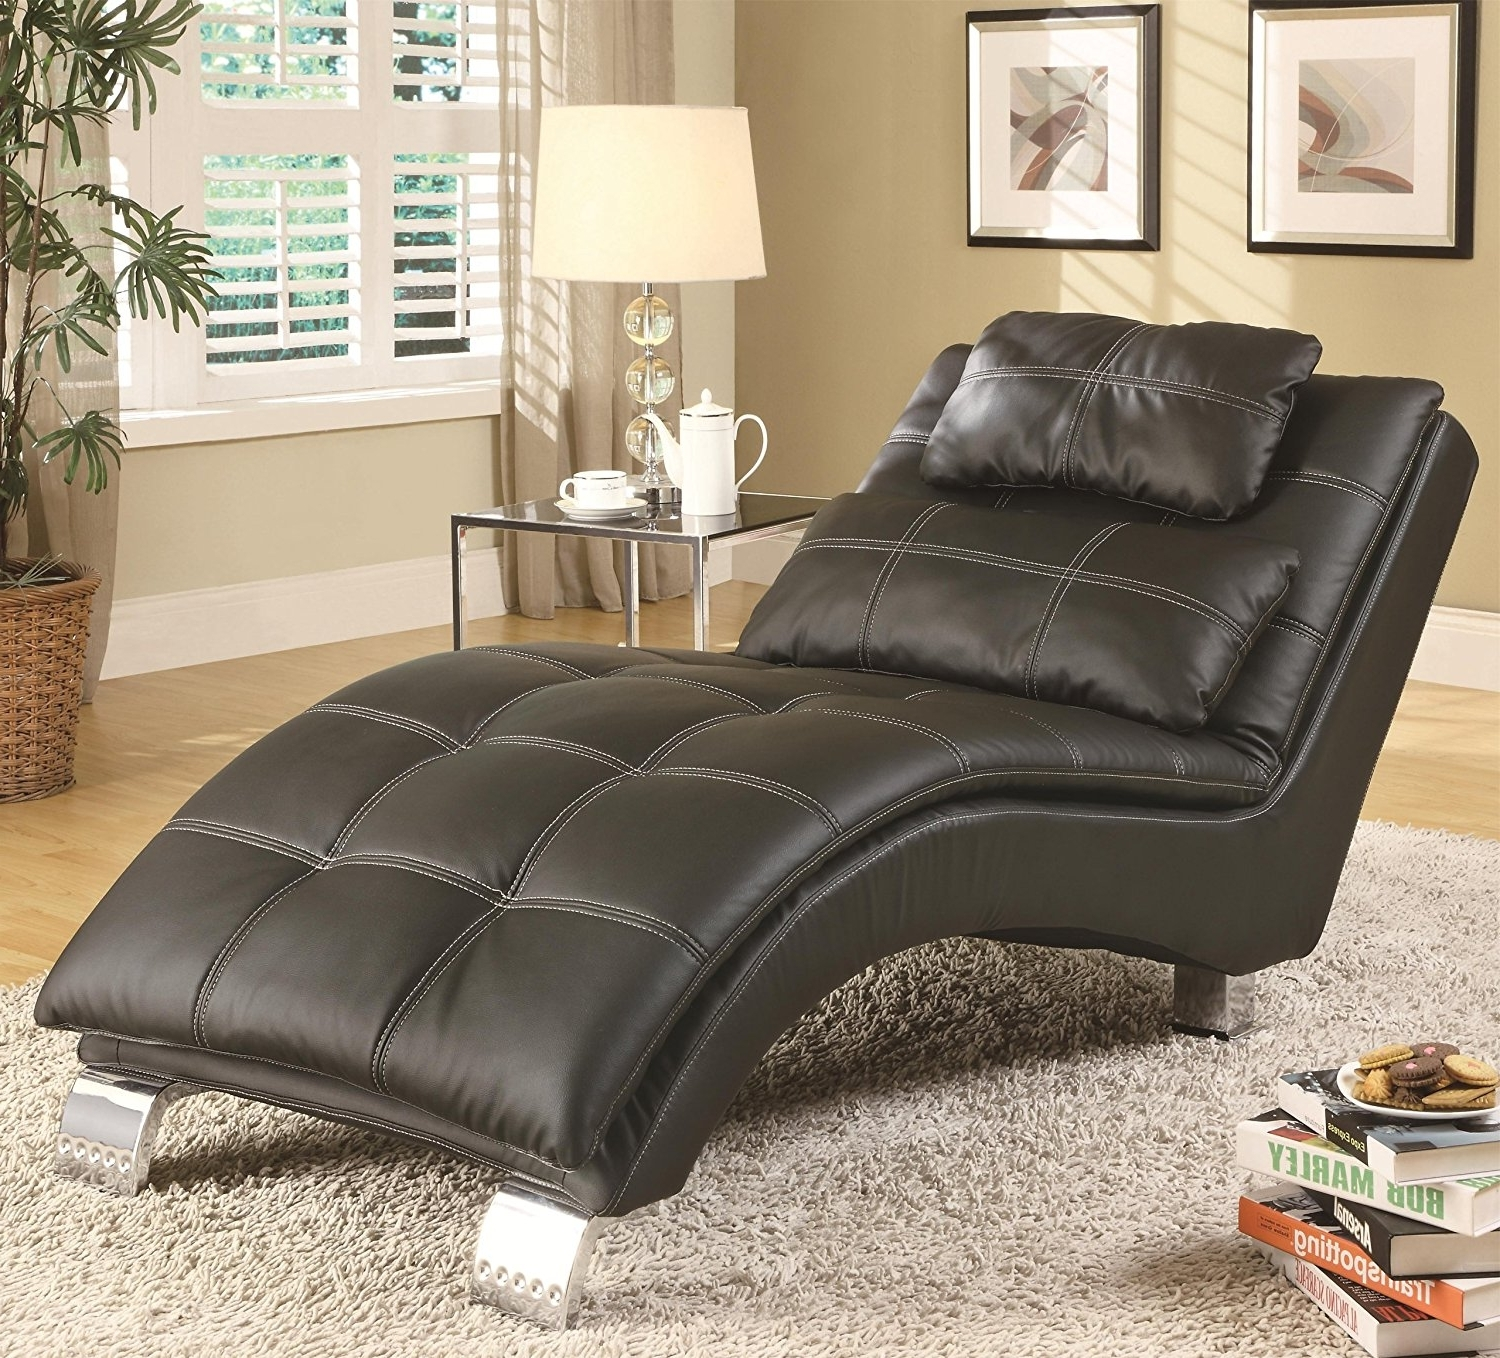 Well Known Luxury Chaise Lounge Chairs For Luxury Chaise Lounge Chairs For Living Room X1 # (View 12 of 15)